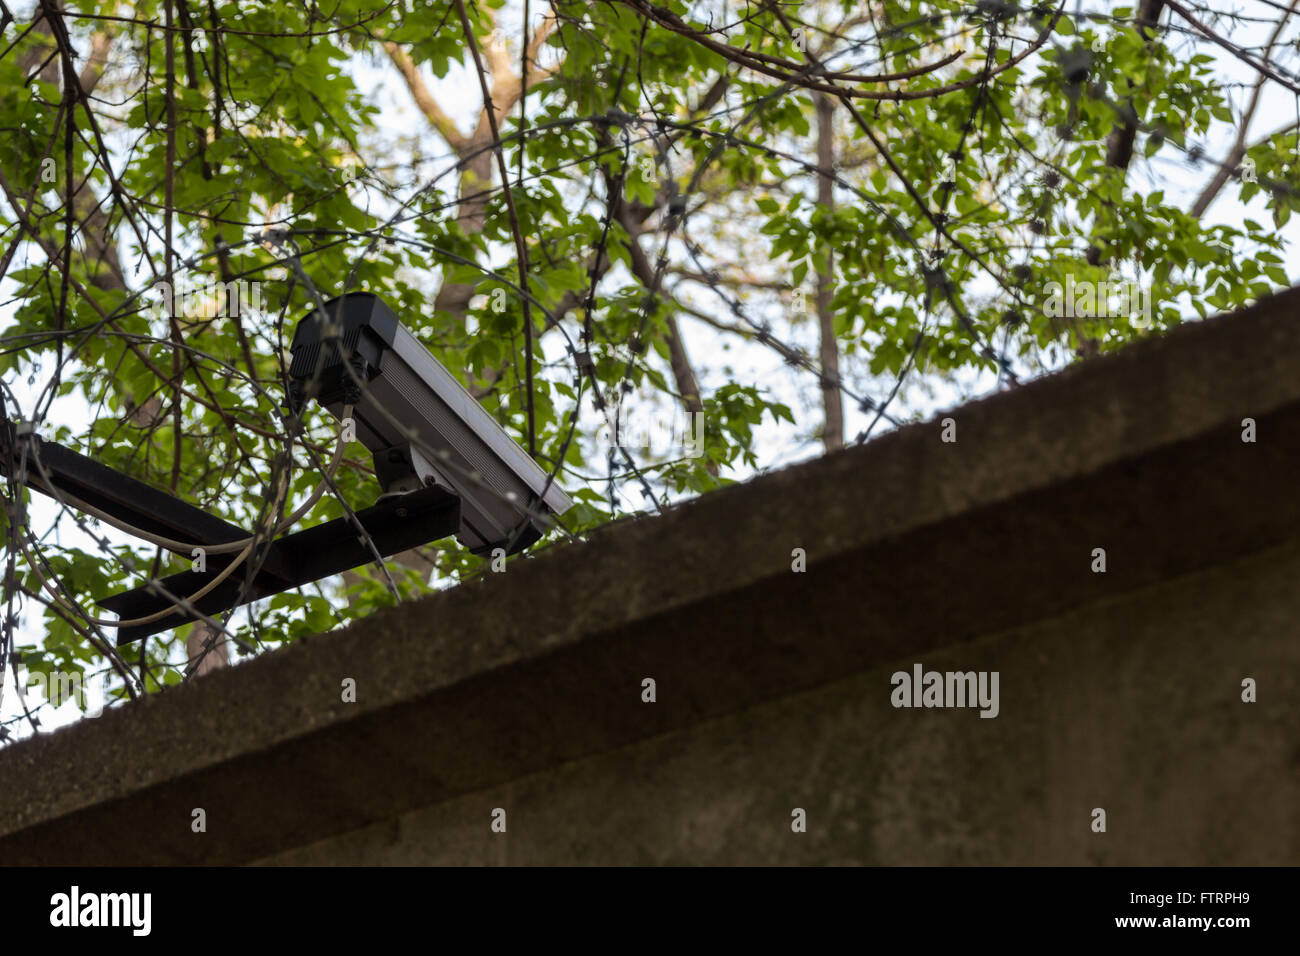 surveillance camera on a concrete fence with barbed wire Stock Photo